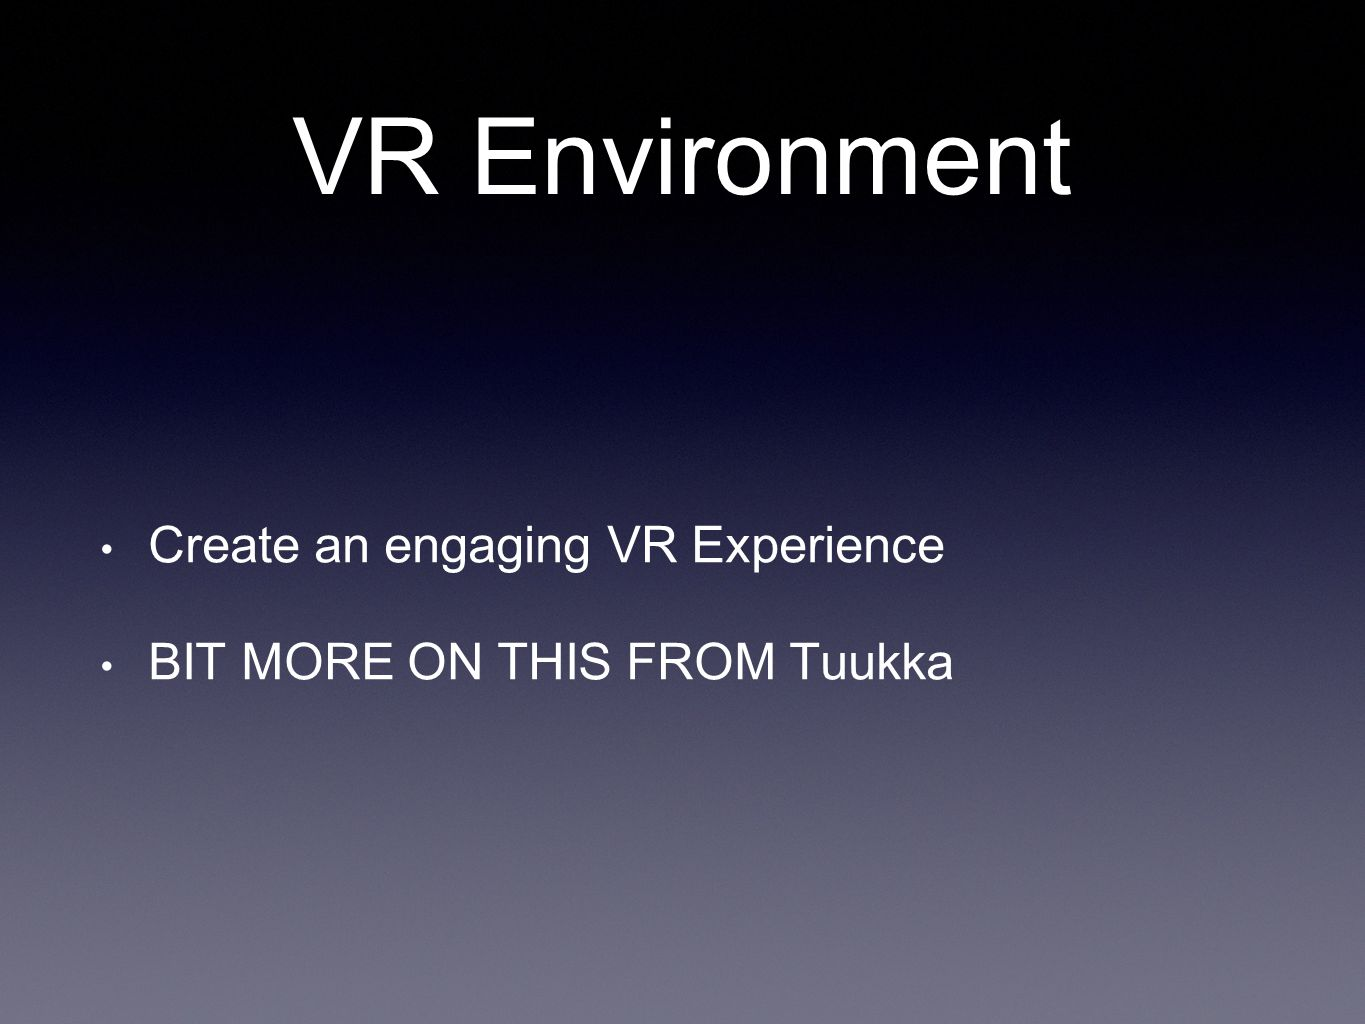 VR Environment Create an engaging VR Experience BIT MORE ON THIS FROM Tuukka